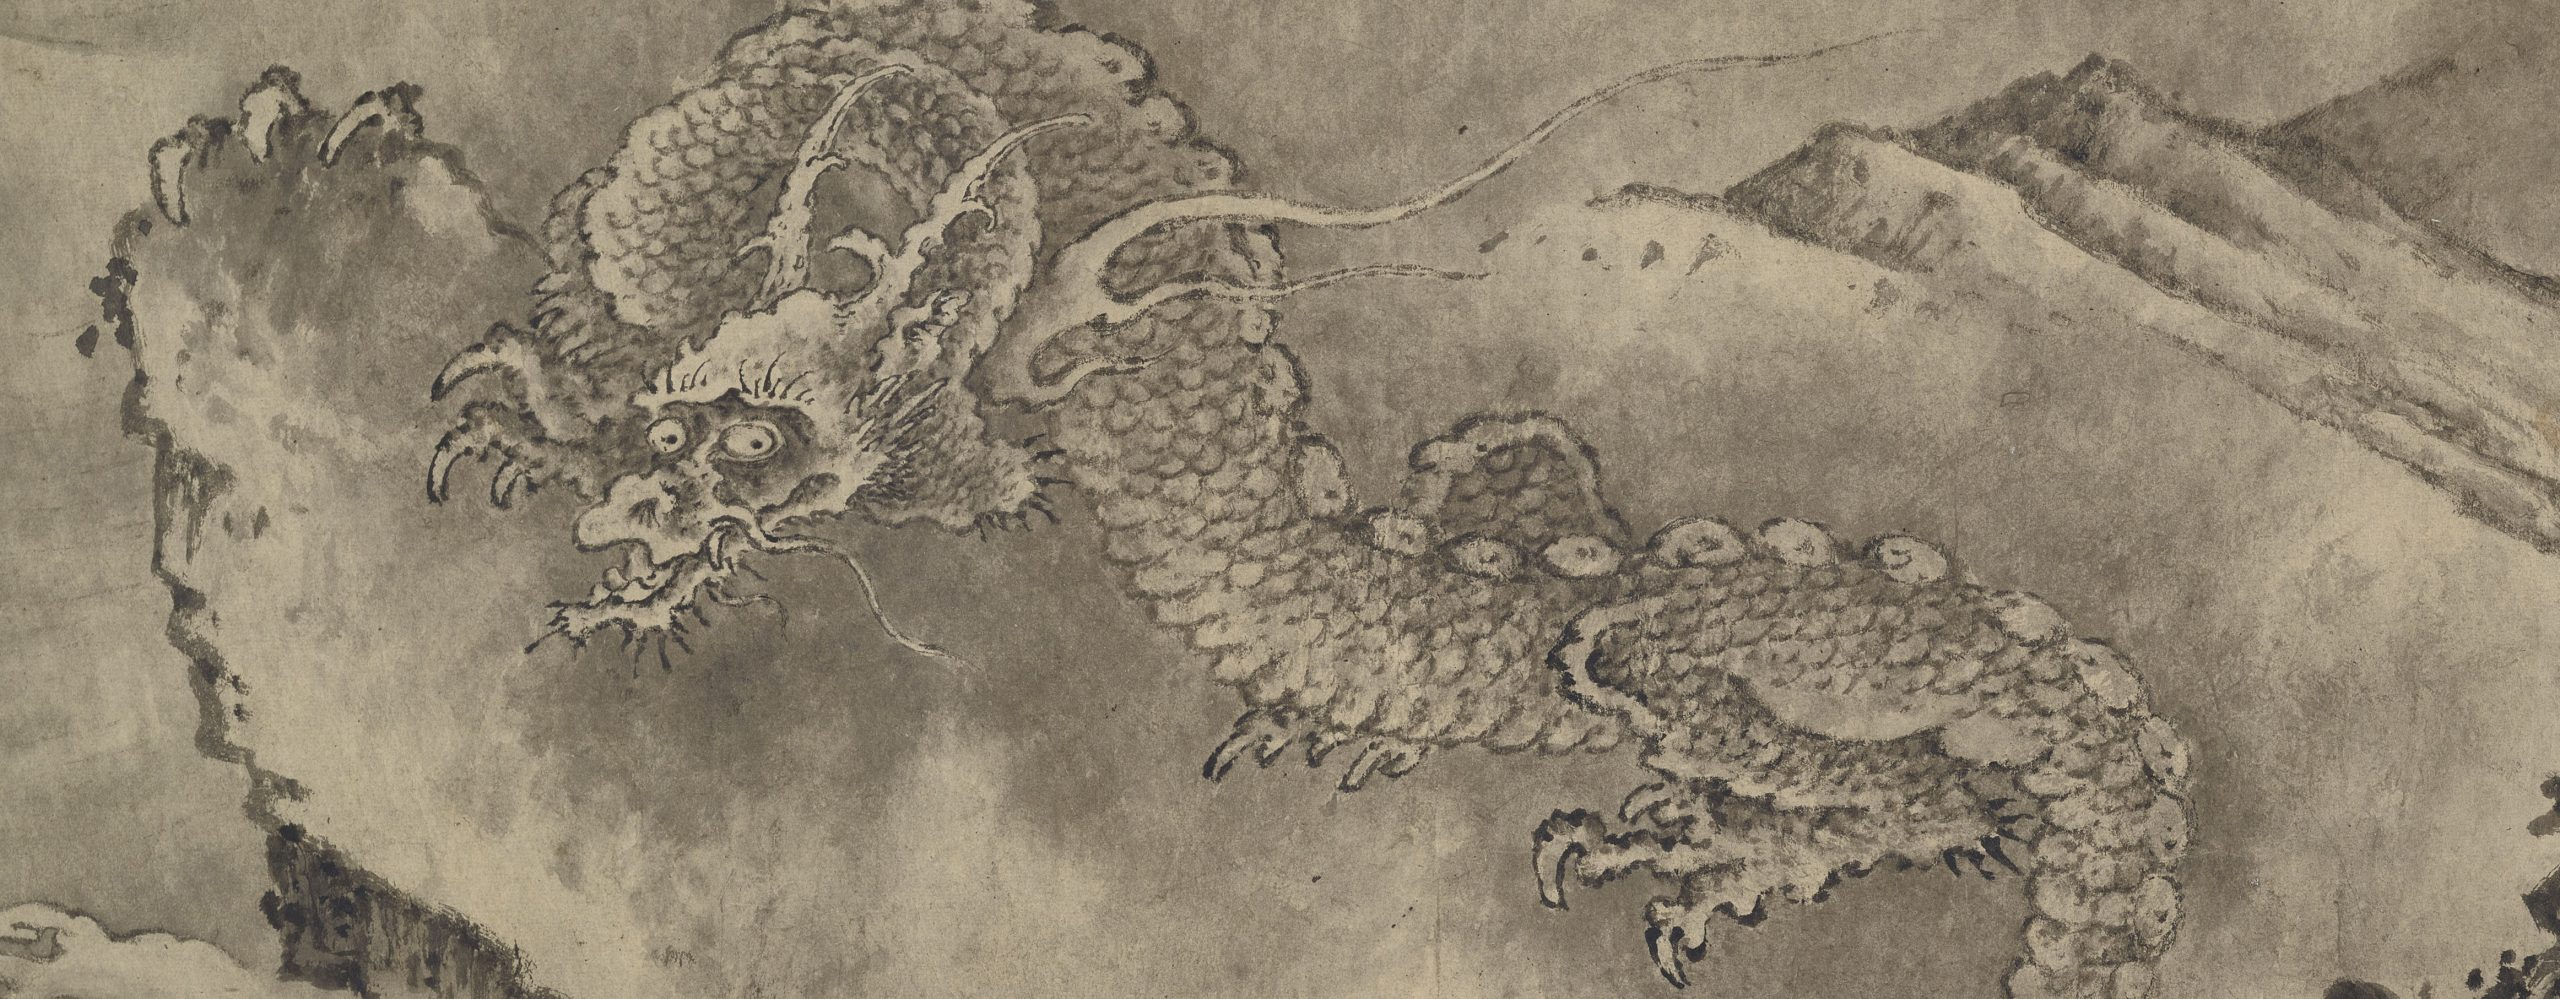 detail of pen and ink illustration of dragon in front of mountains